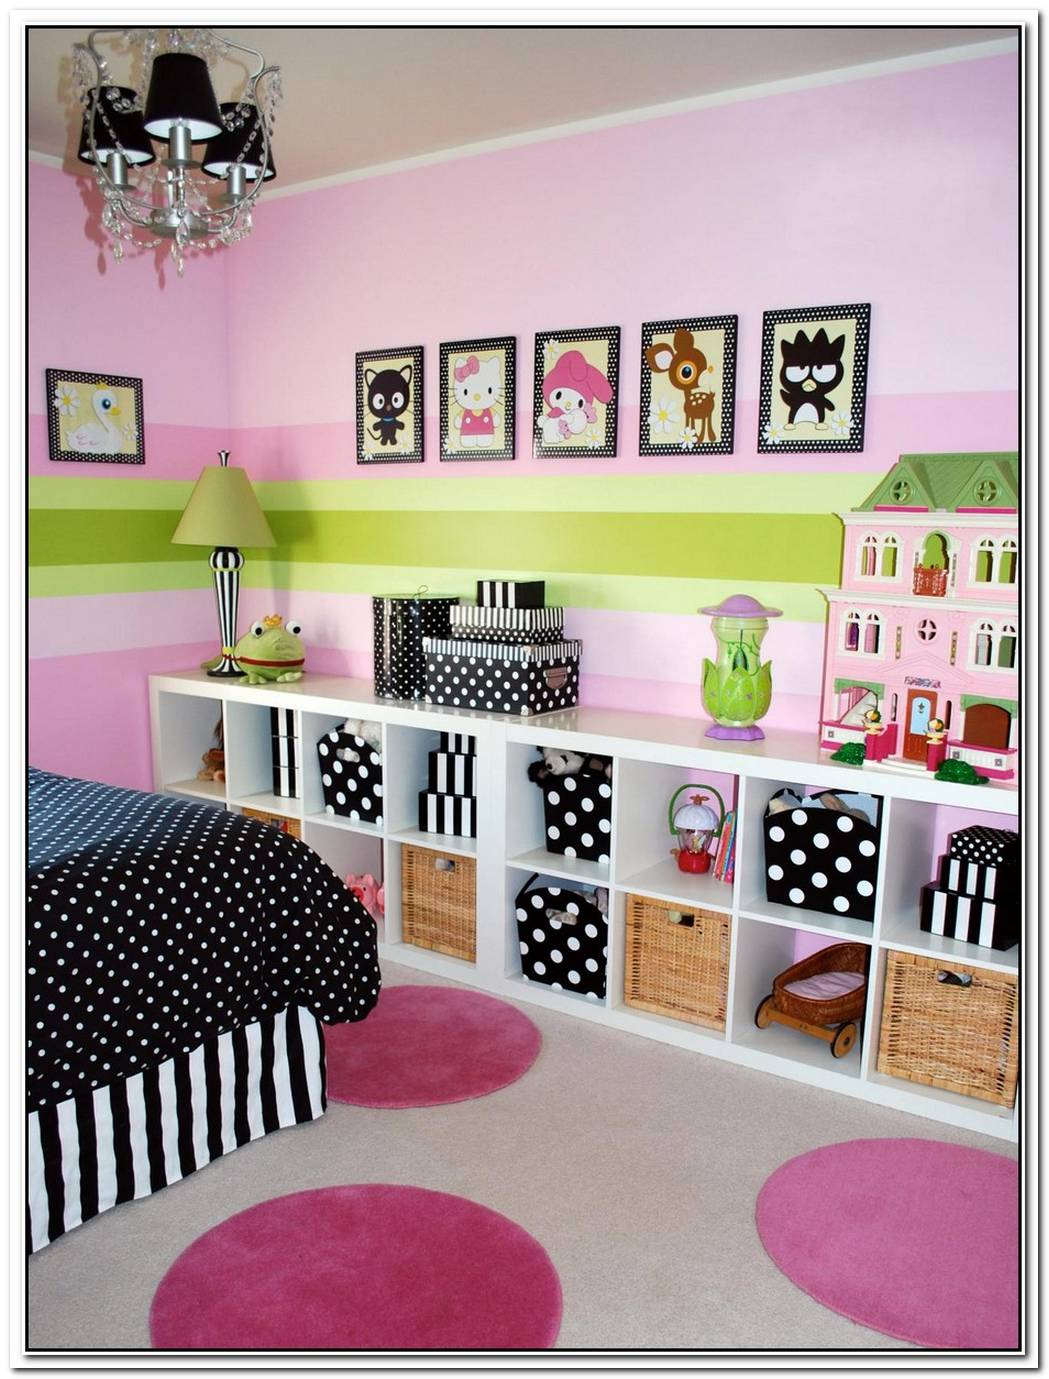 Fun And Creative Room For The Little Ones